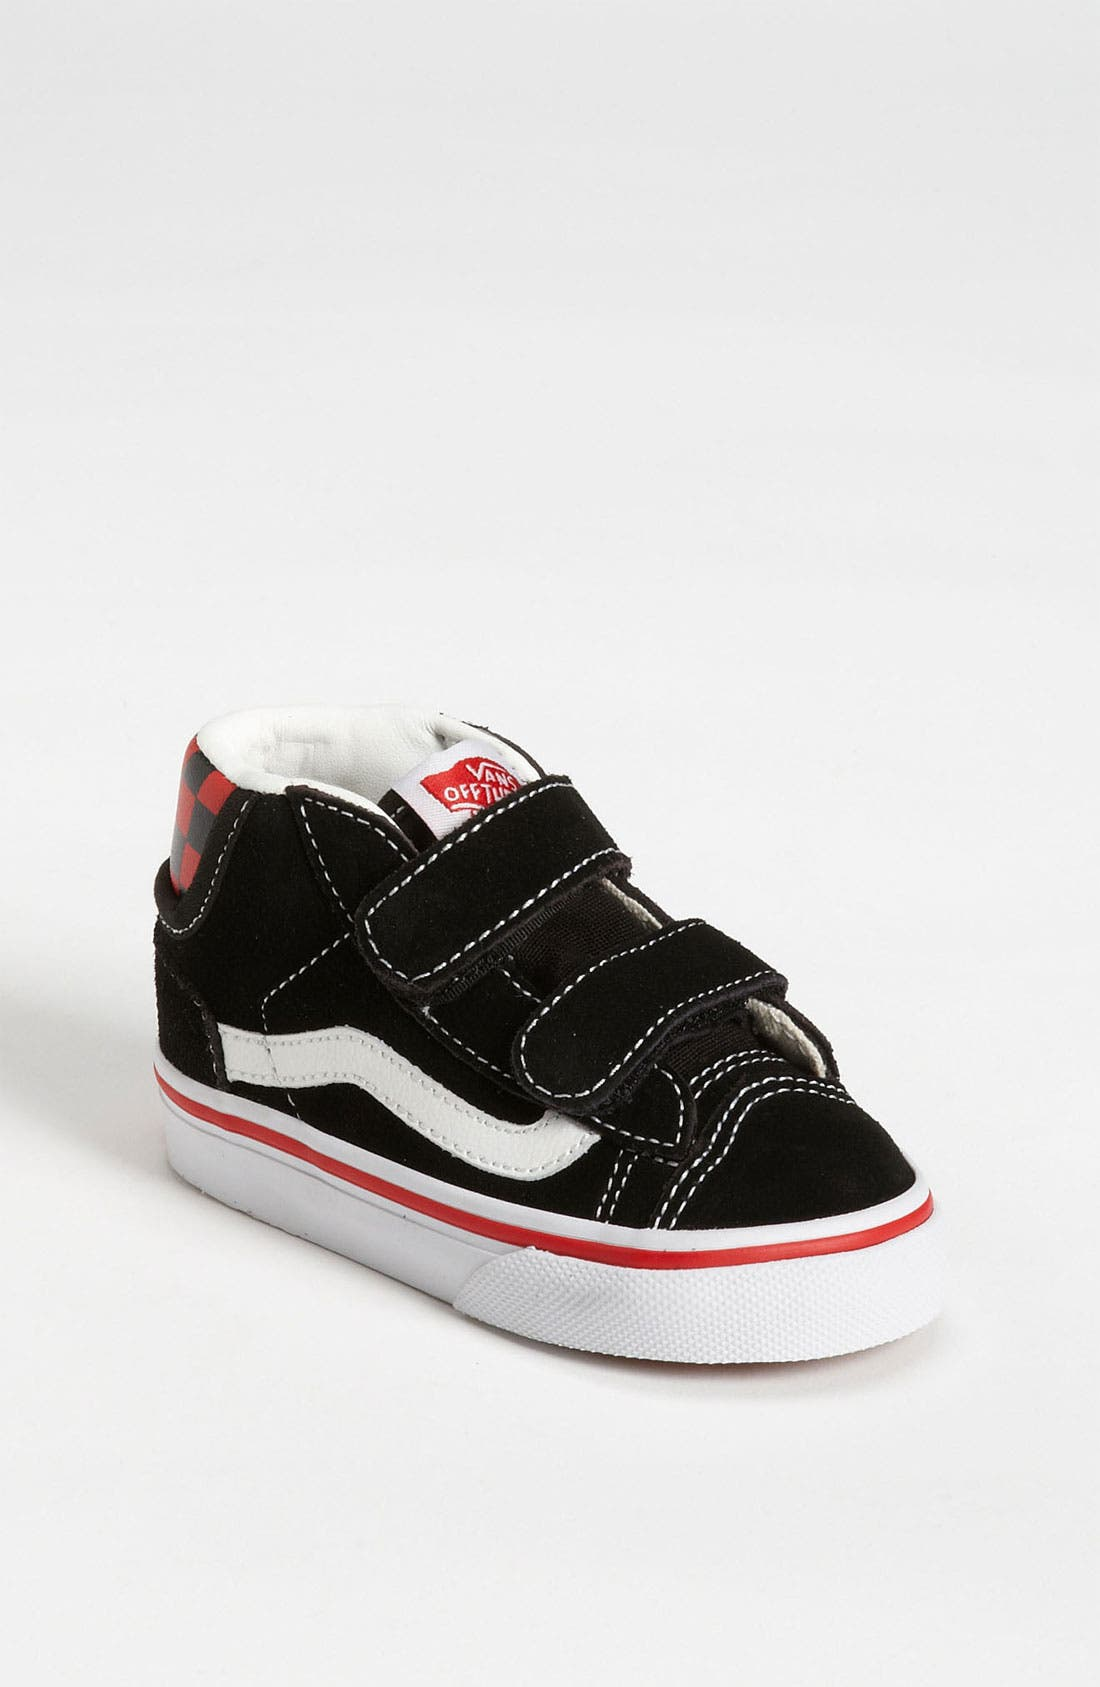 Main Image - Vans 'Mid Skool 77' Skate Shoe (Baby, Walker, Toddler, Little Kid & Big Kid)